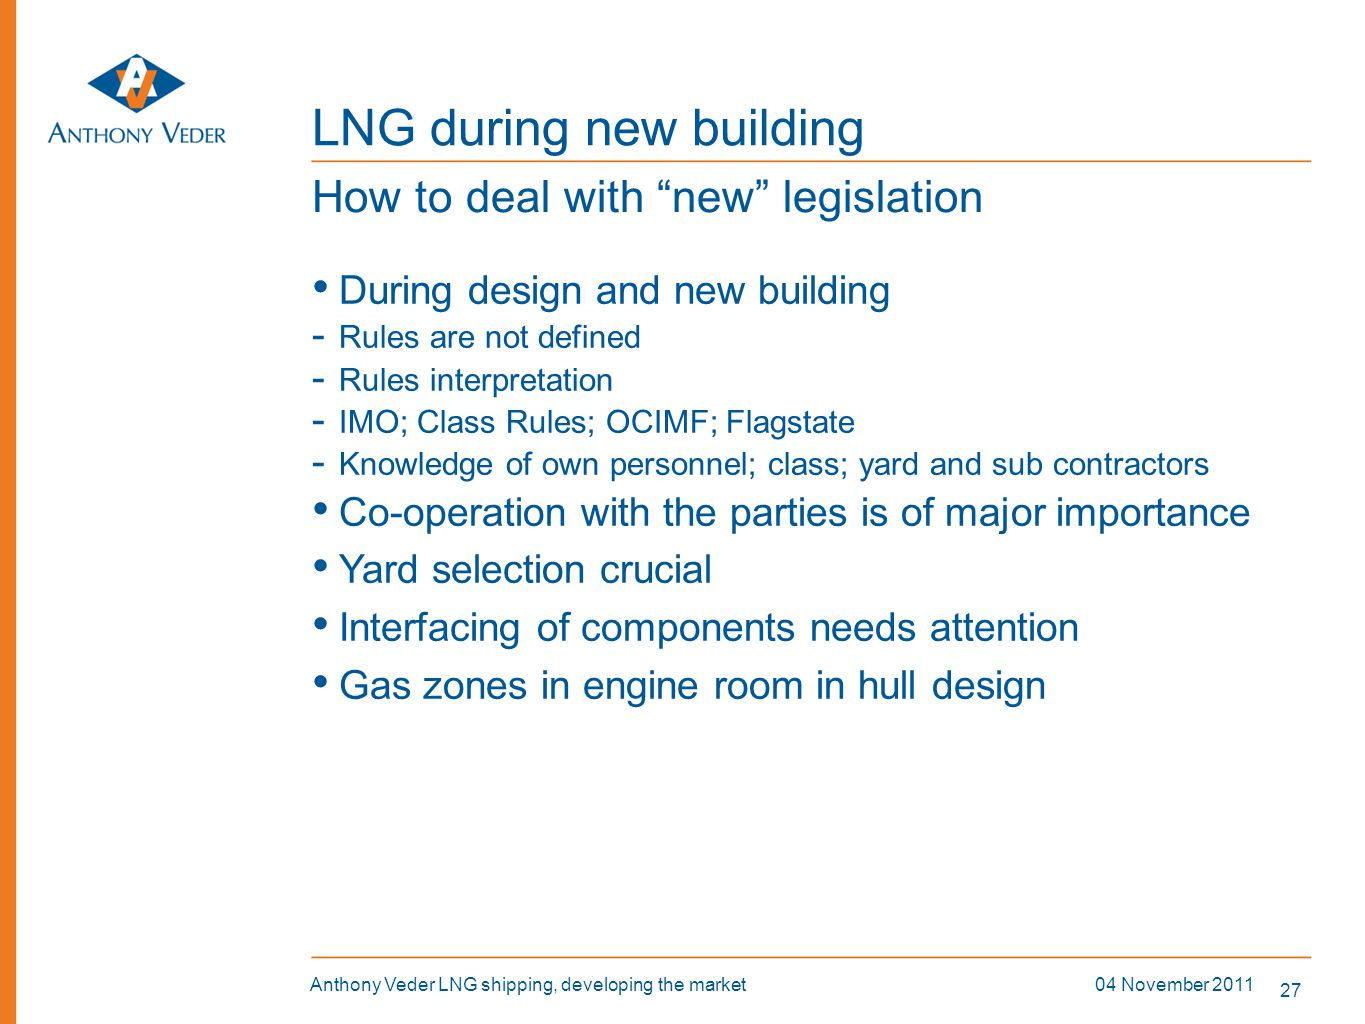 LNG during new building